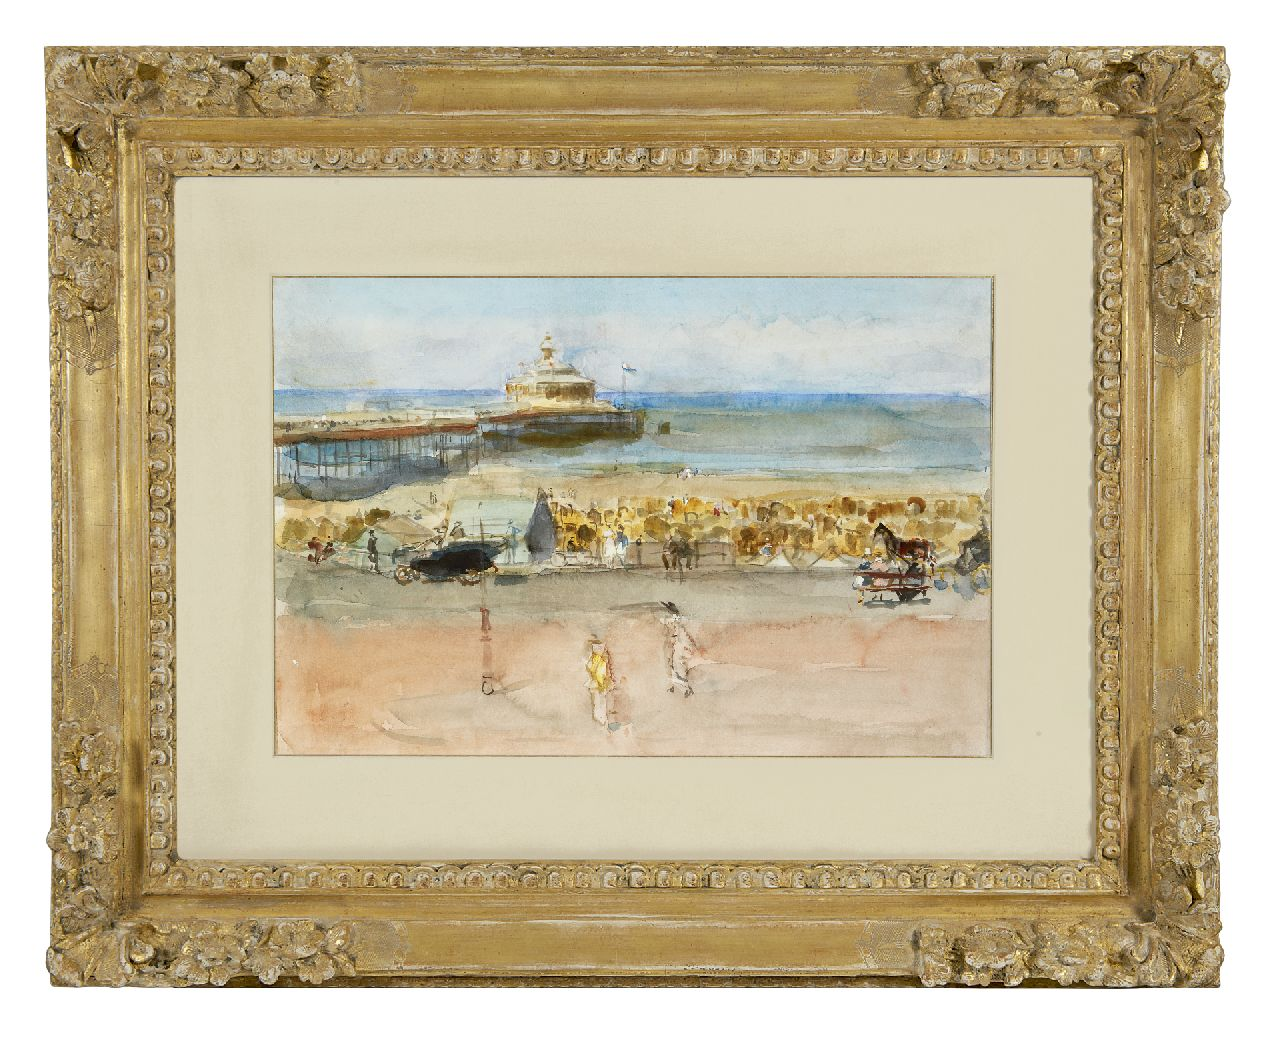 Israels I.L.  | 'Isaac' Lazarus Israels, A sunny day on the Scheveningen boulevard, watercolour and gouache on paper laid down on board 33.7 x 50.6 cm, painted 1915-1919